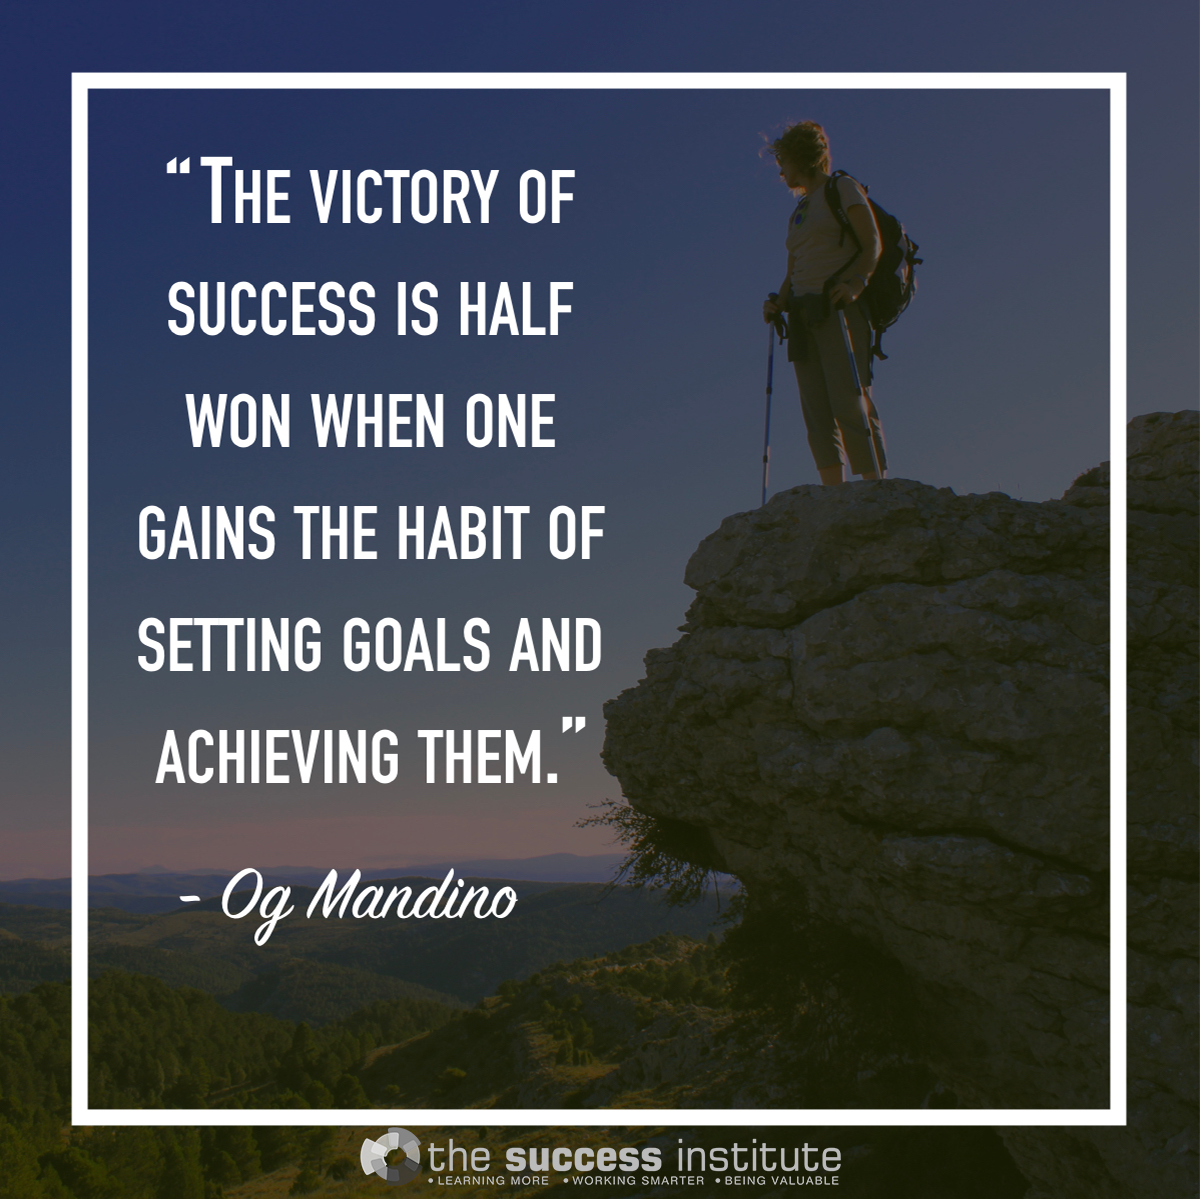 The victory of success is half won.